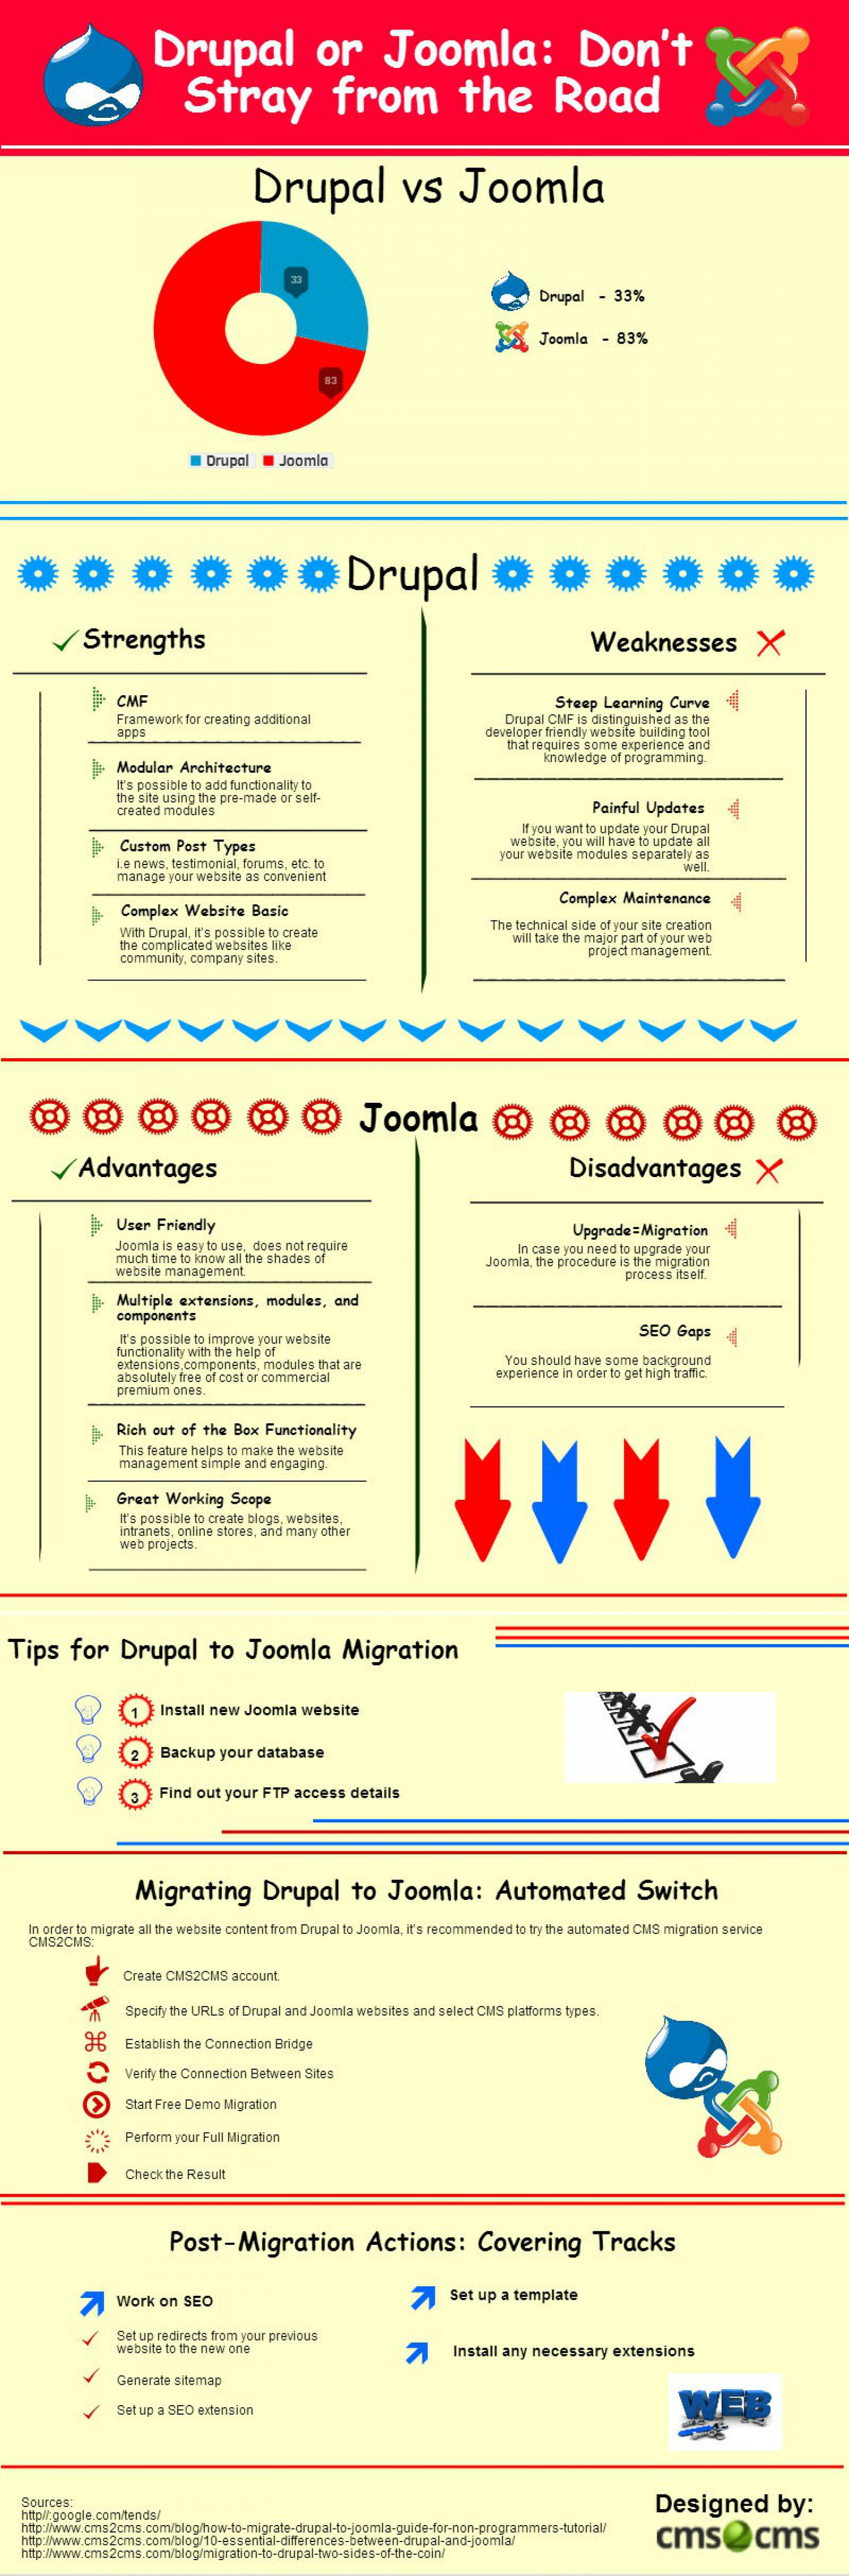 Drupal to Joomla Comparison and Migration Guide Infographic